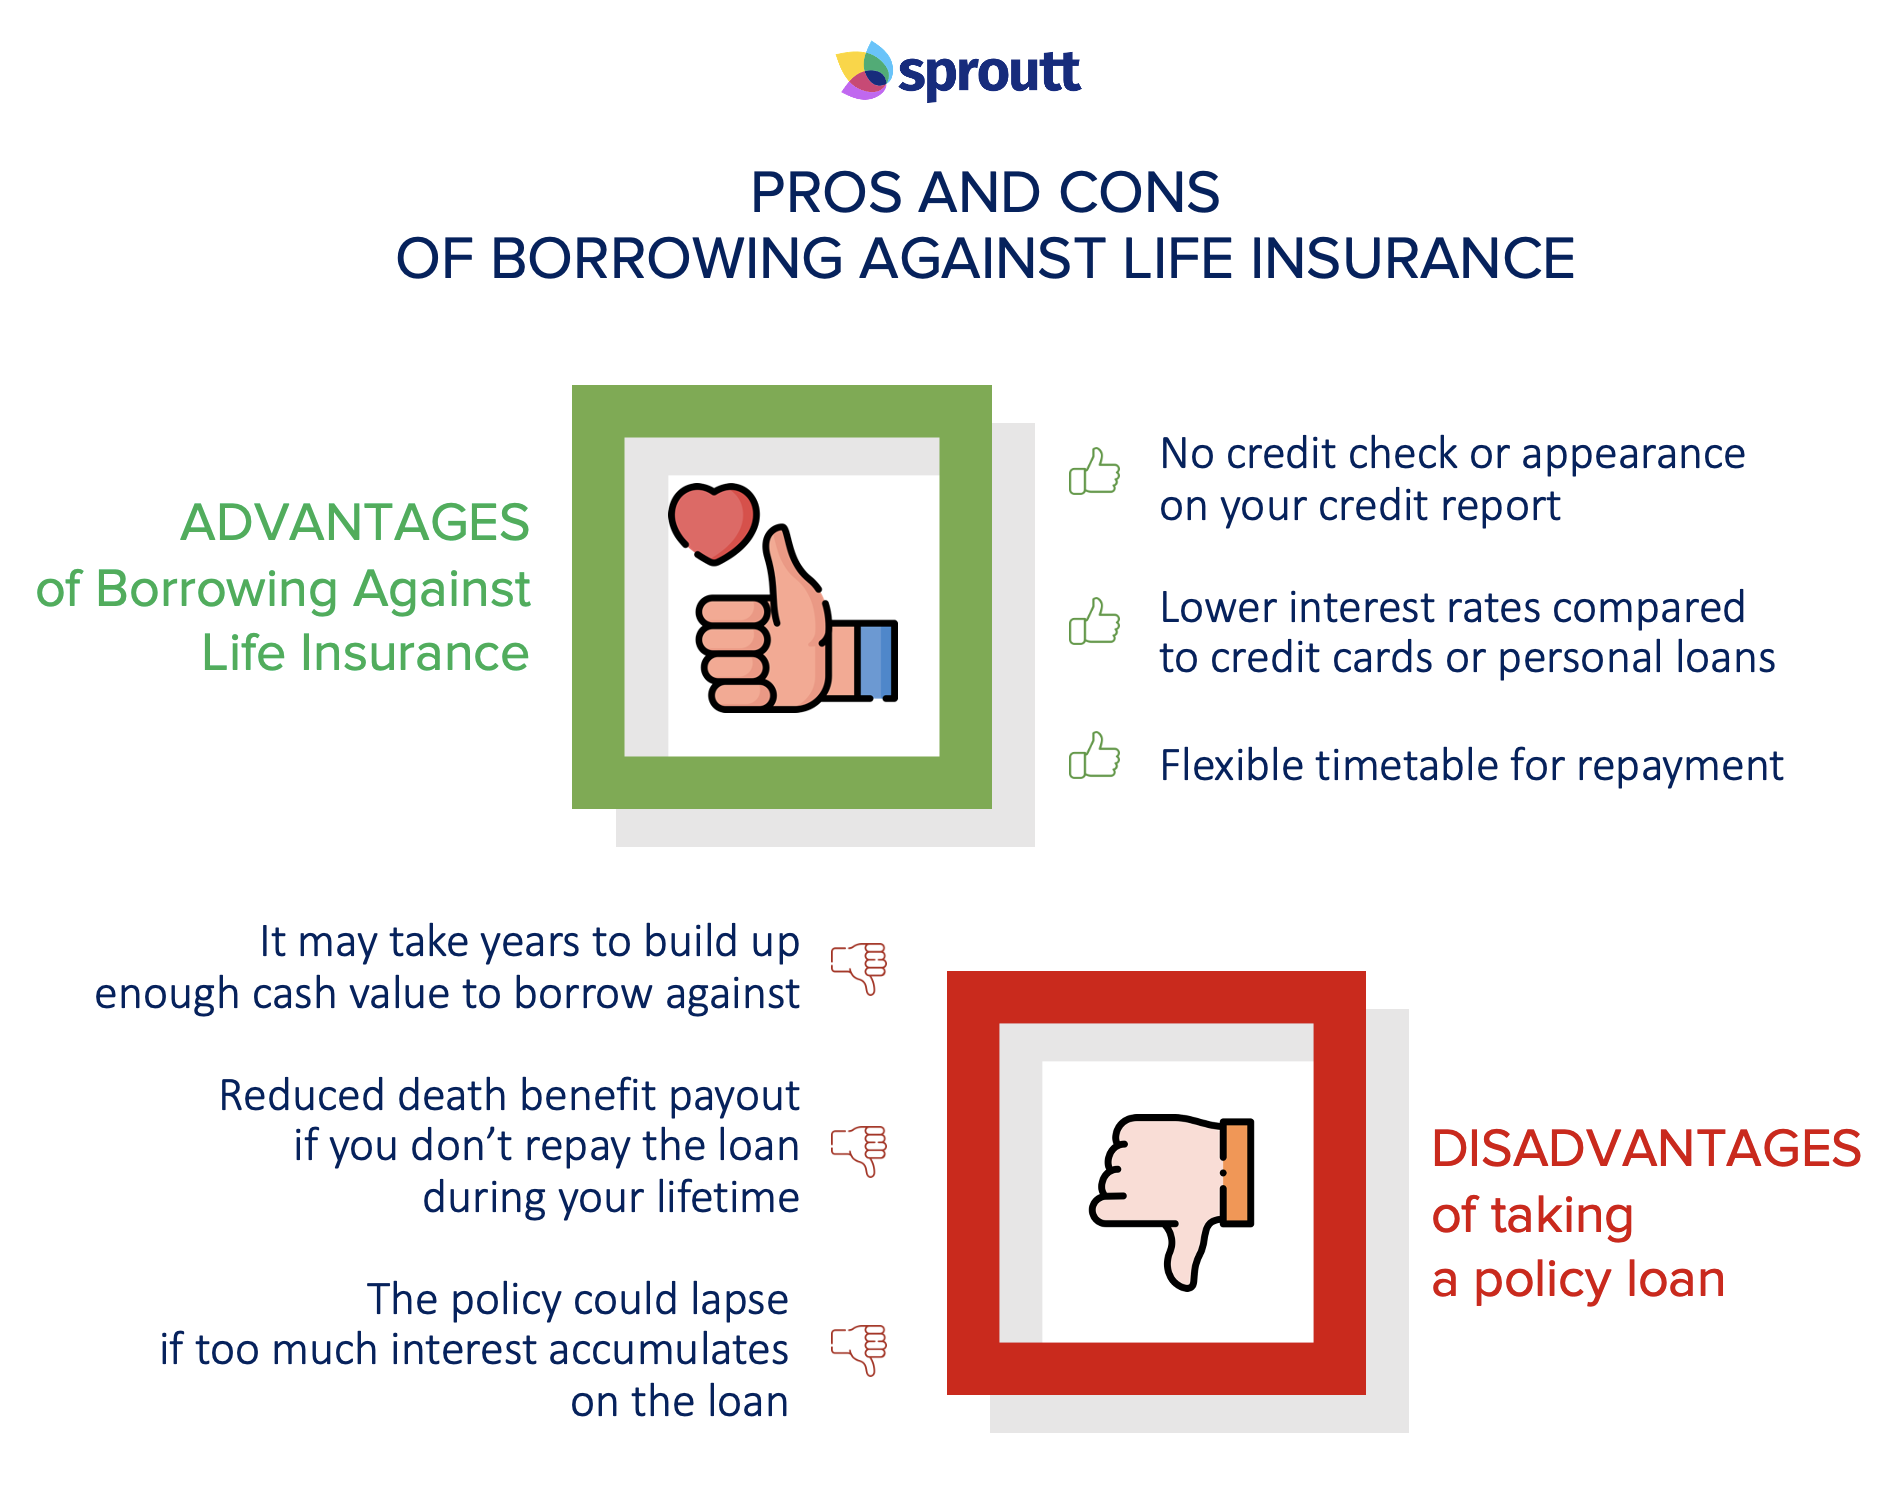 Pros and Cons of Borrowing Against Life Insurance Infographic